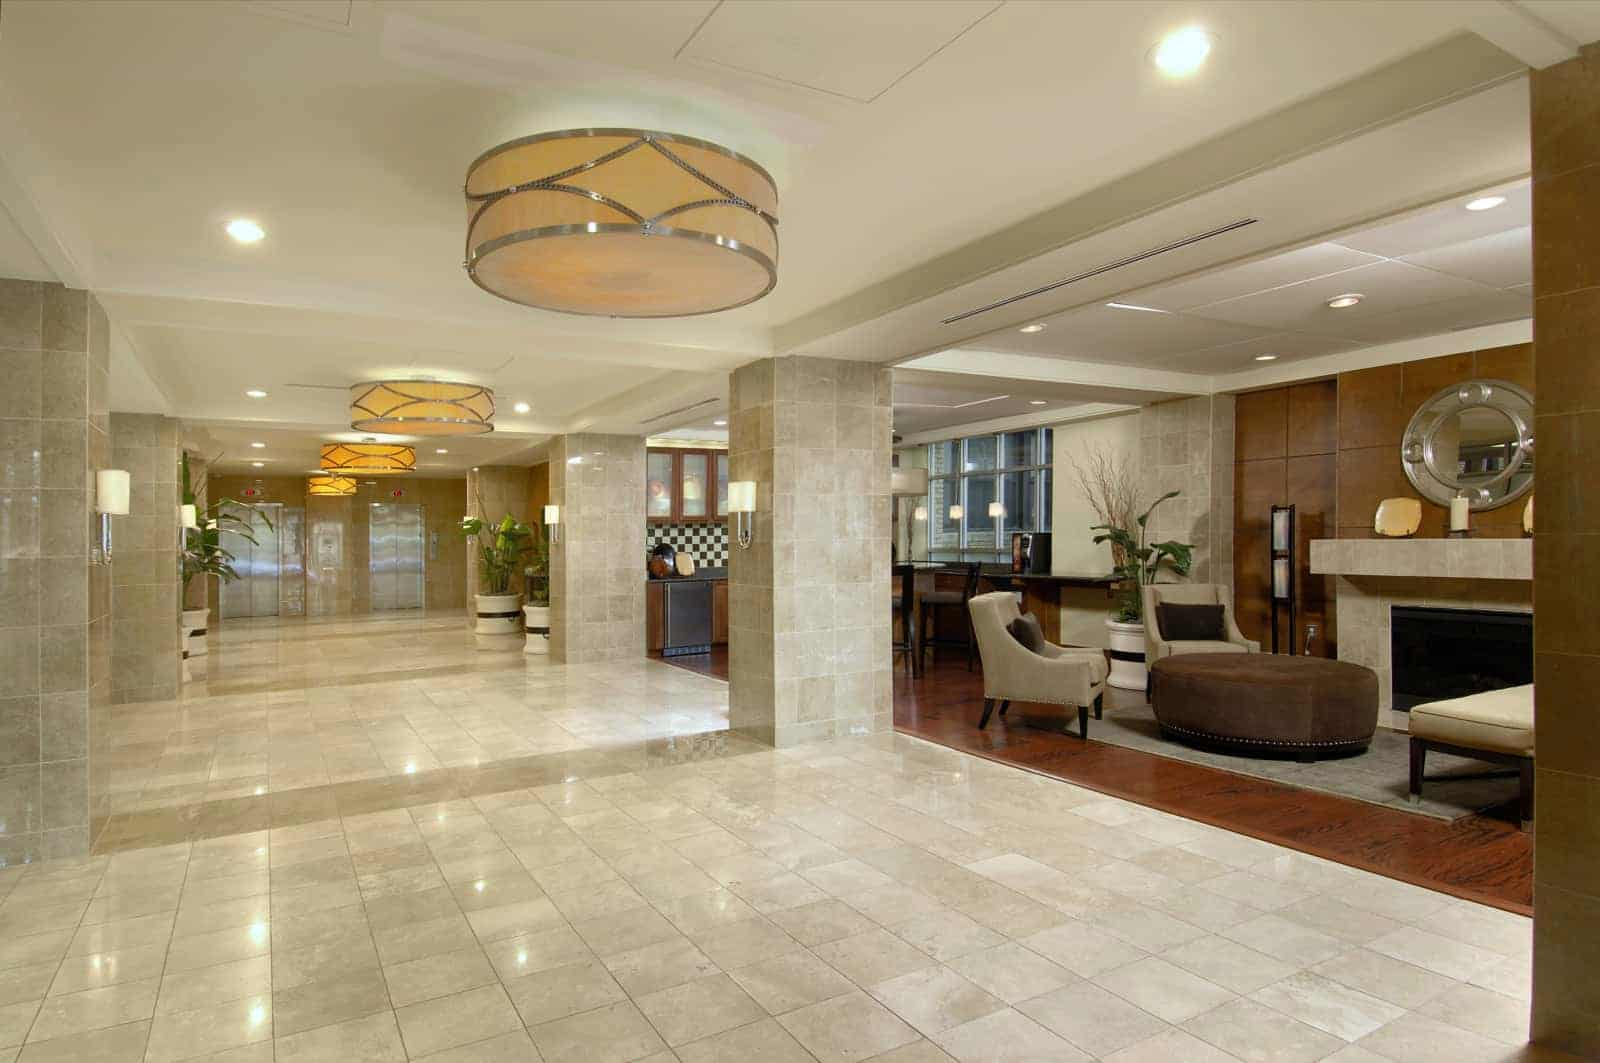 View of the lobby looking toward the elevators.